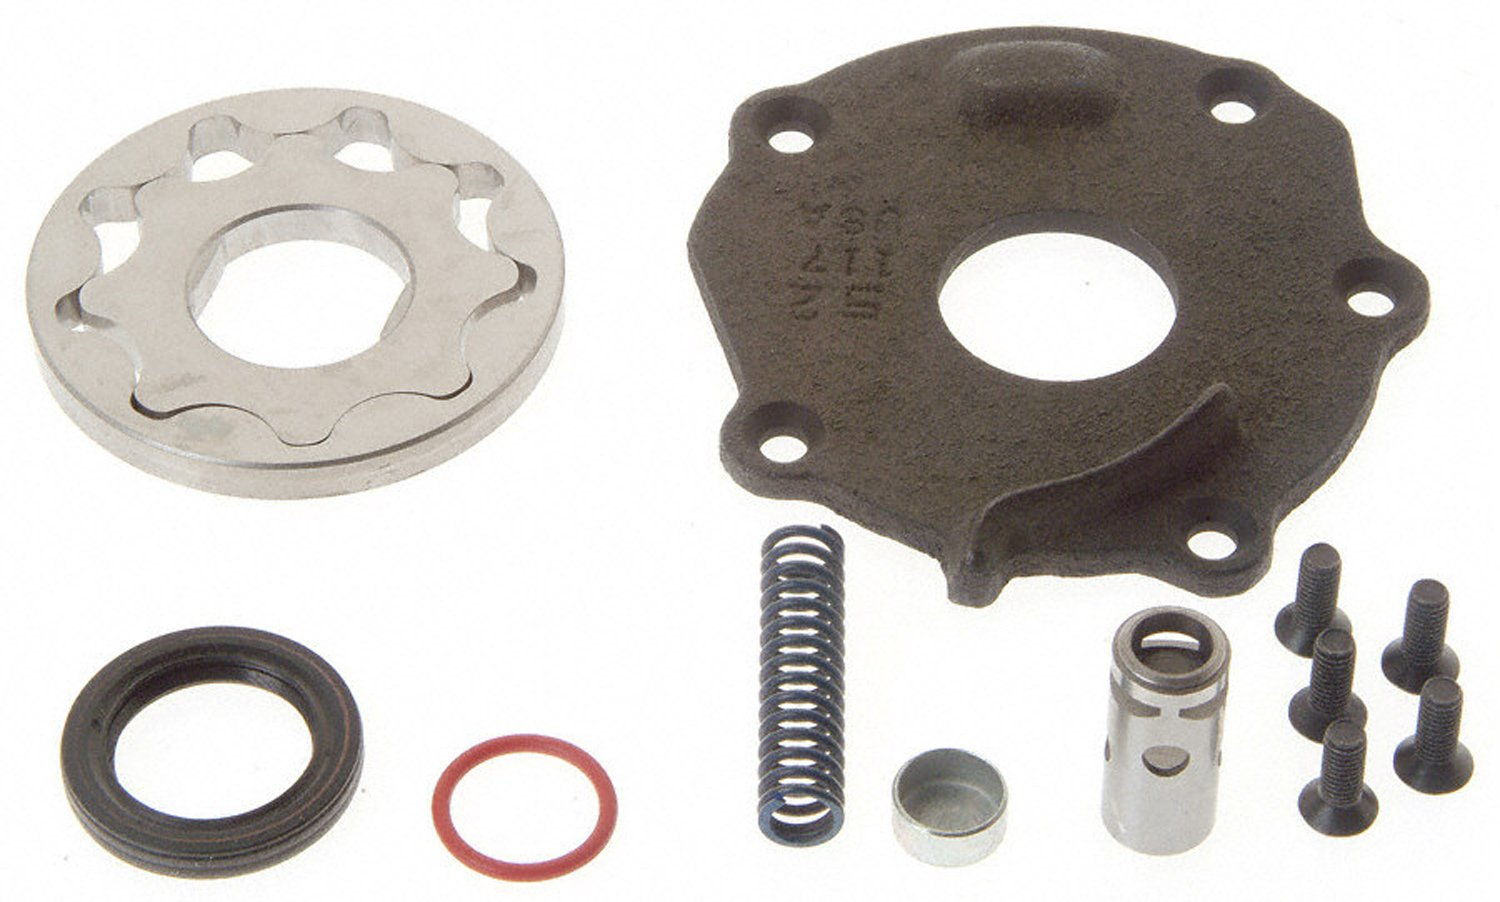 Sealed Power 224-51384 Oil Pump Repair Kit FED22451384